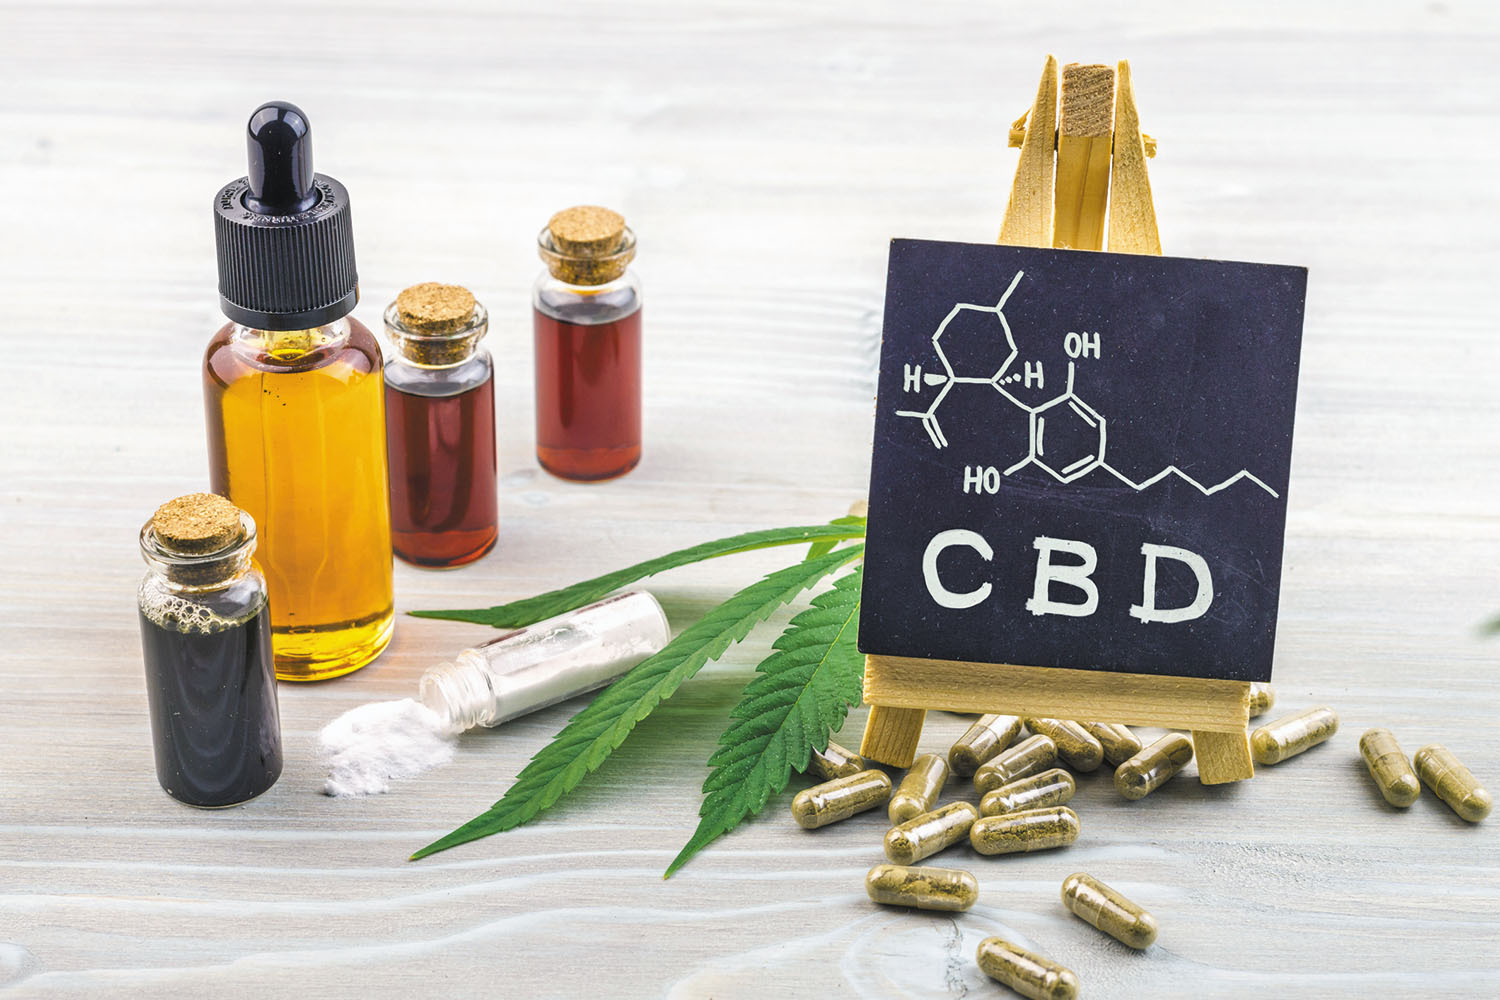 Glance out the importance of balance cbd oil